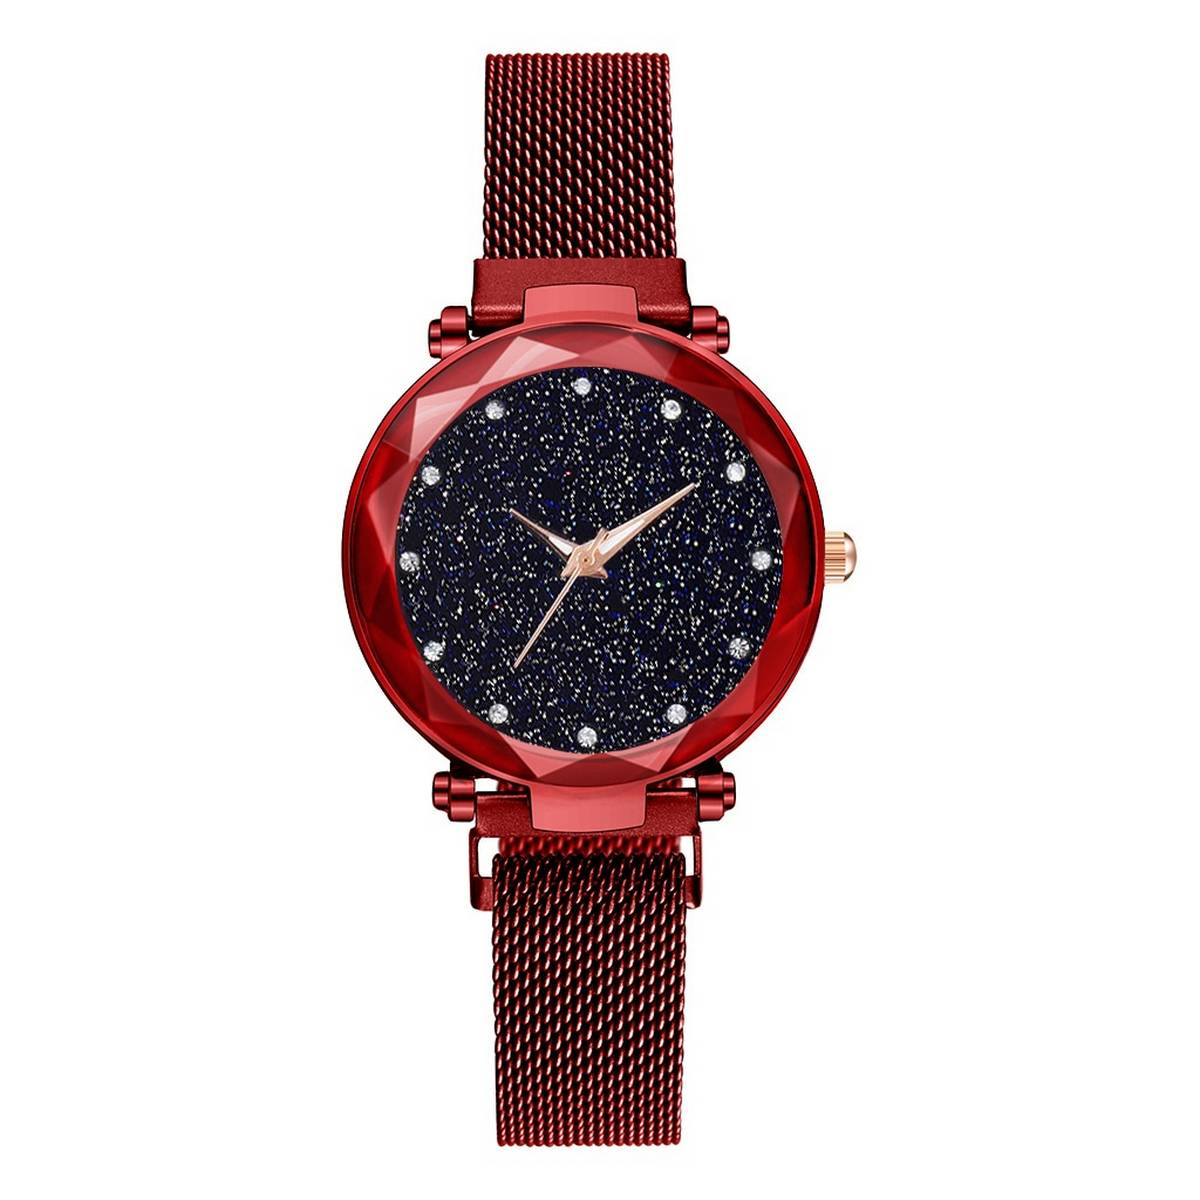 Luxury ladies watches trendy magnet watch for girls red and black color available